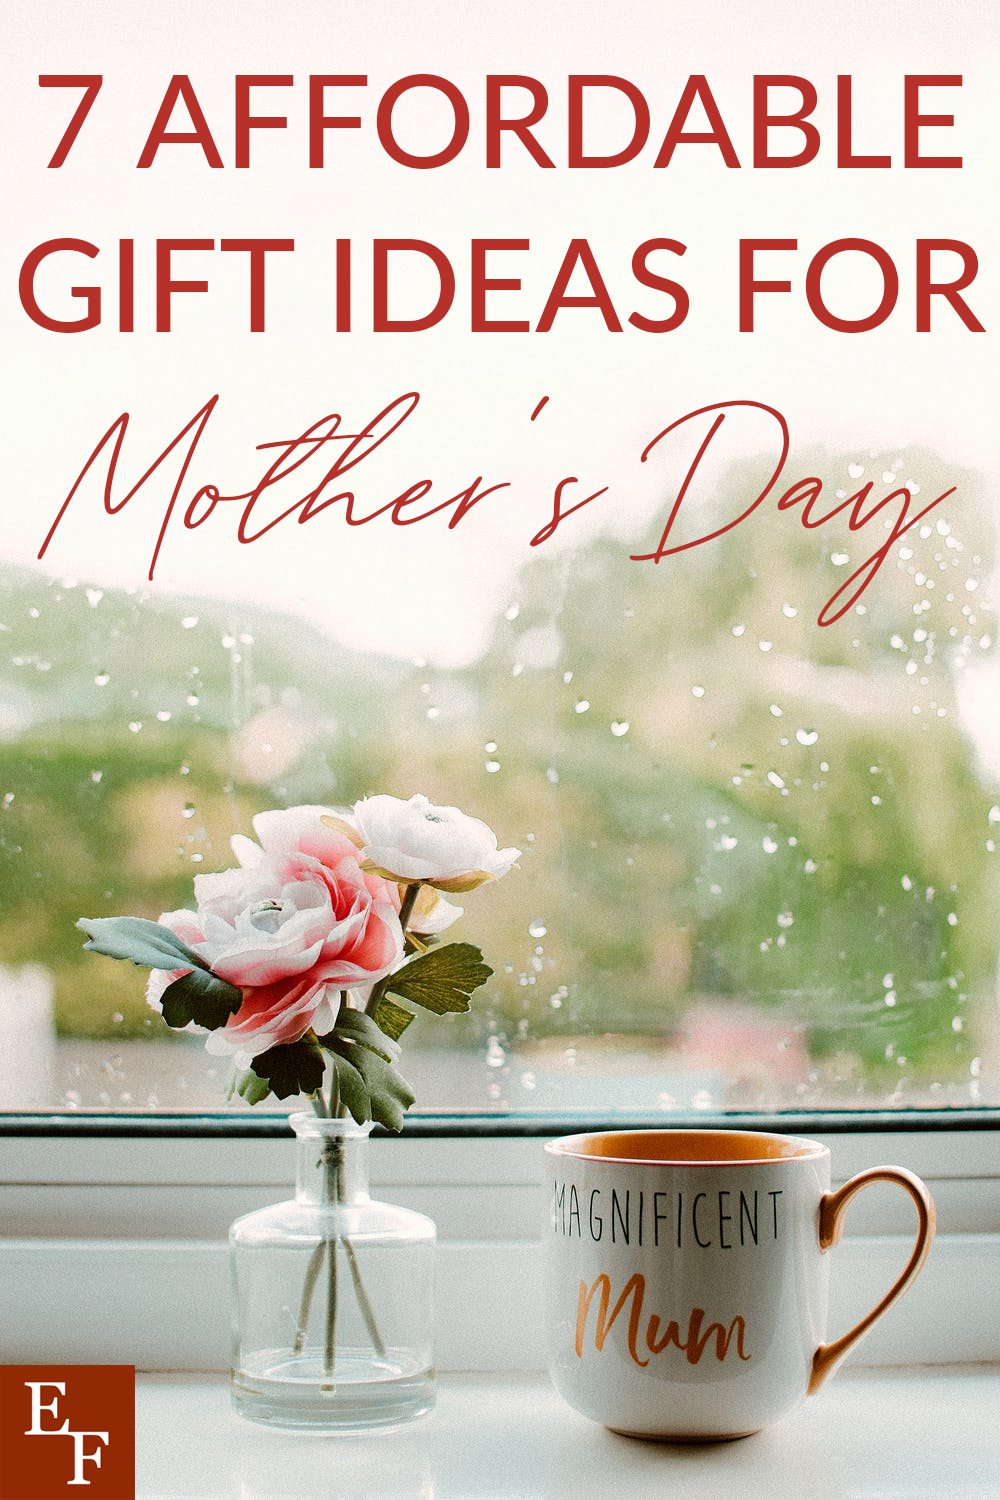 Mother's Day will be here before you know it. Are you ready? Here are 7 affordable gift ideas for Mother's Day.